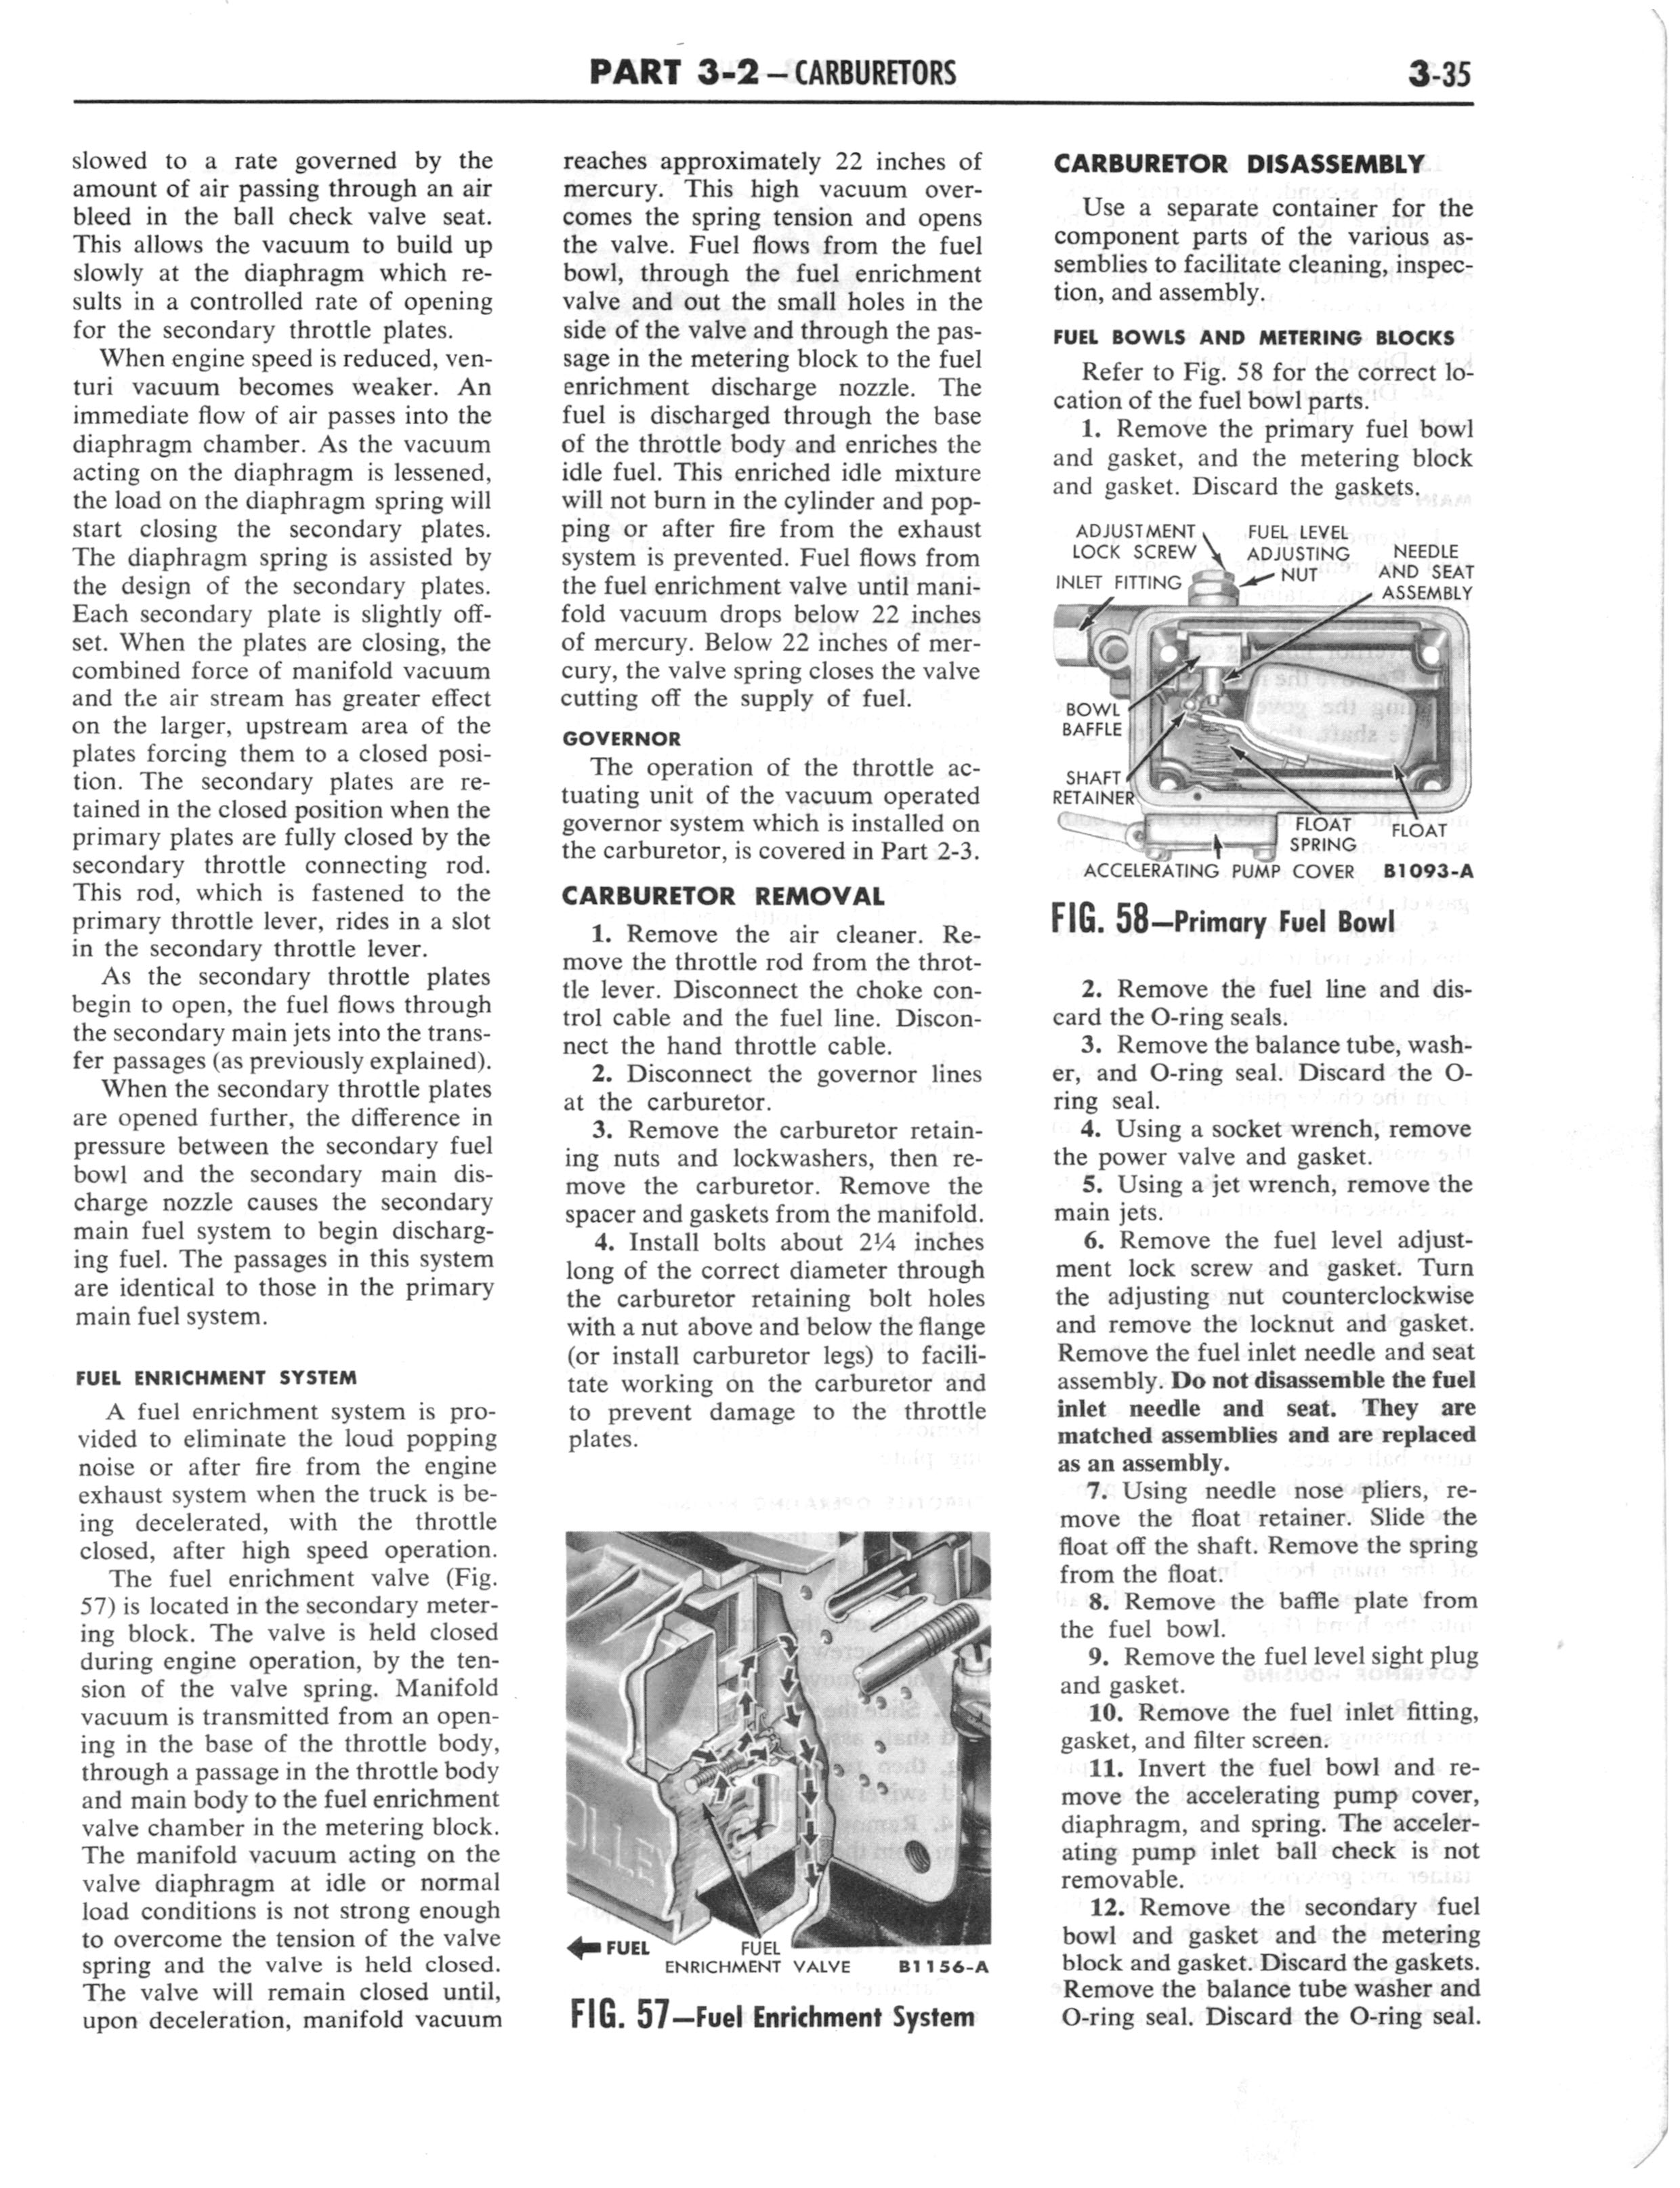 1960 Ford and Mercury Truck Shop Manual page 174 of 641